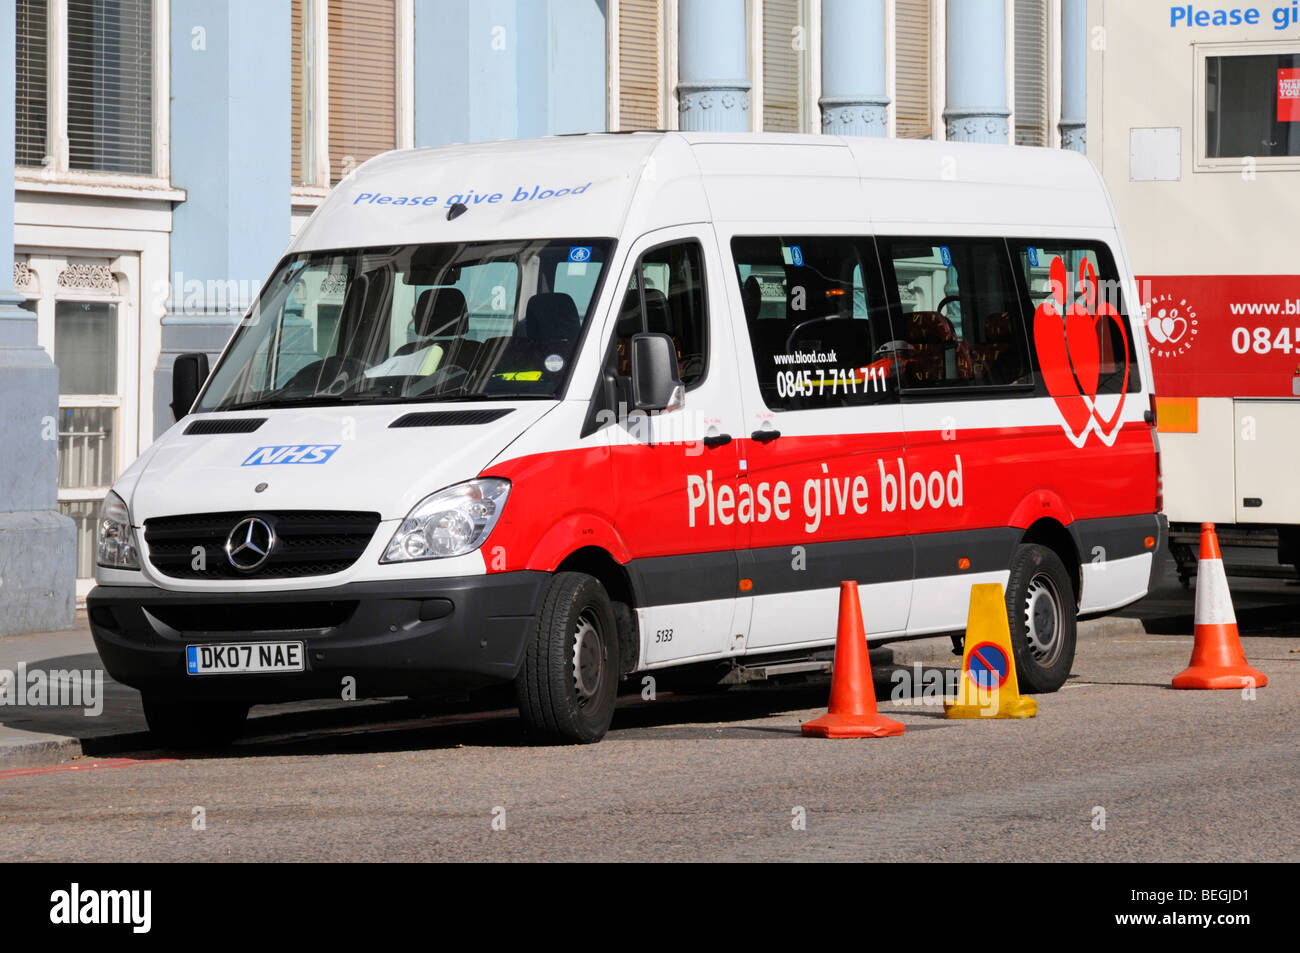 NHS Blood donor mobile collection vehicles parked in London street - Stock Image